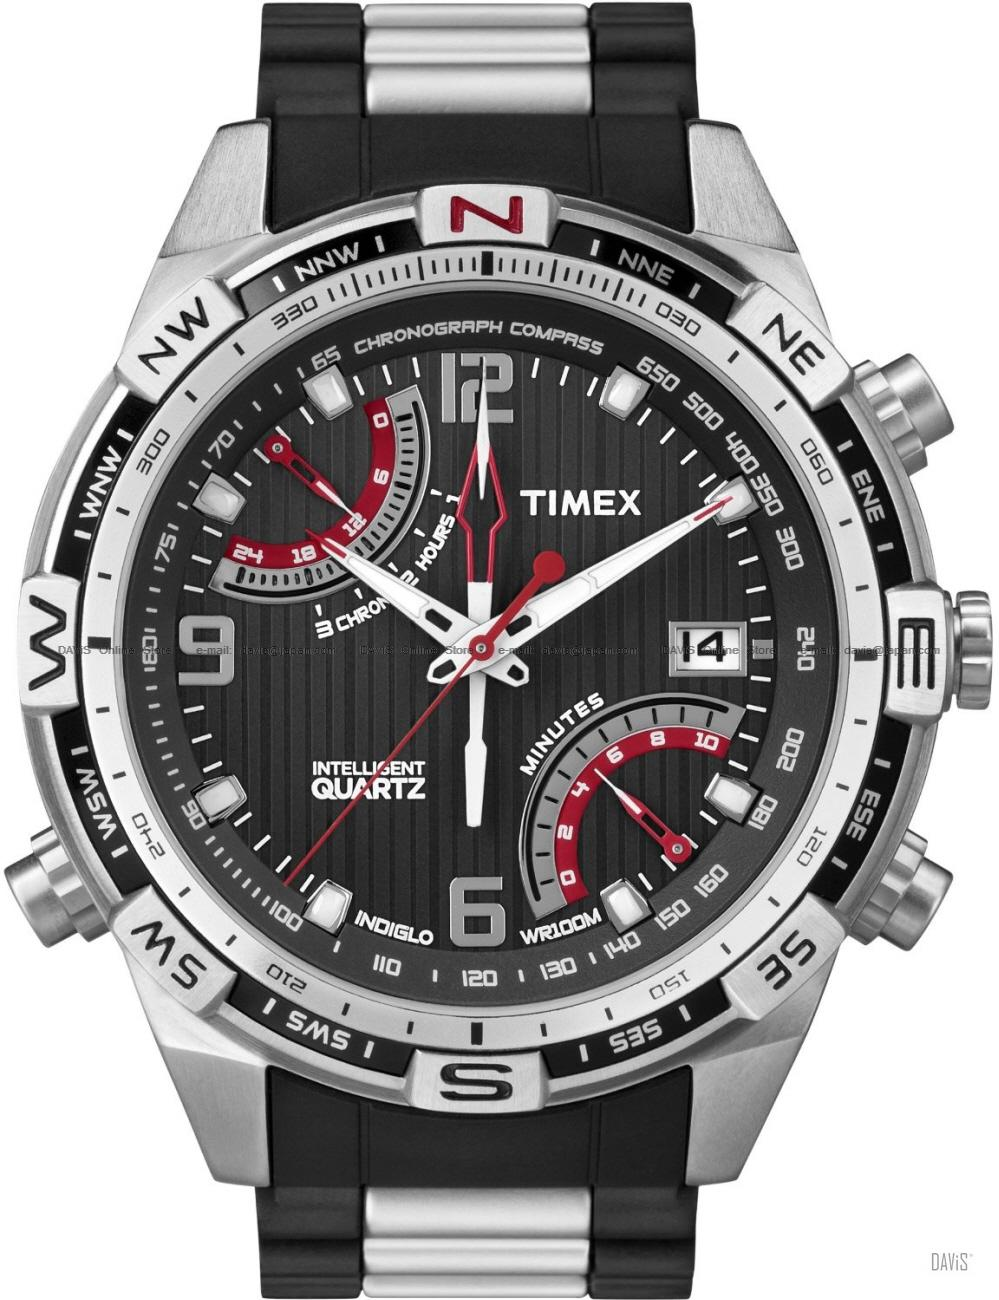 TIMEX T49868 (M) Intelligent Fly-Back Chrono Compass bracelet black